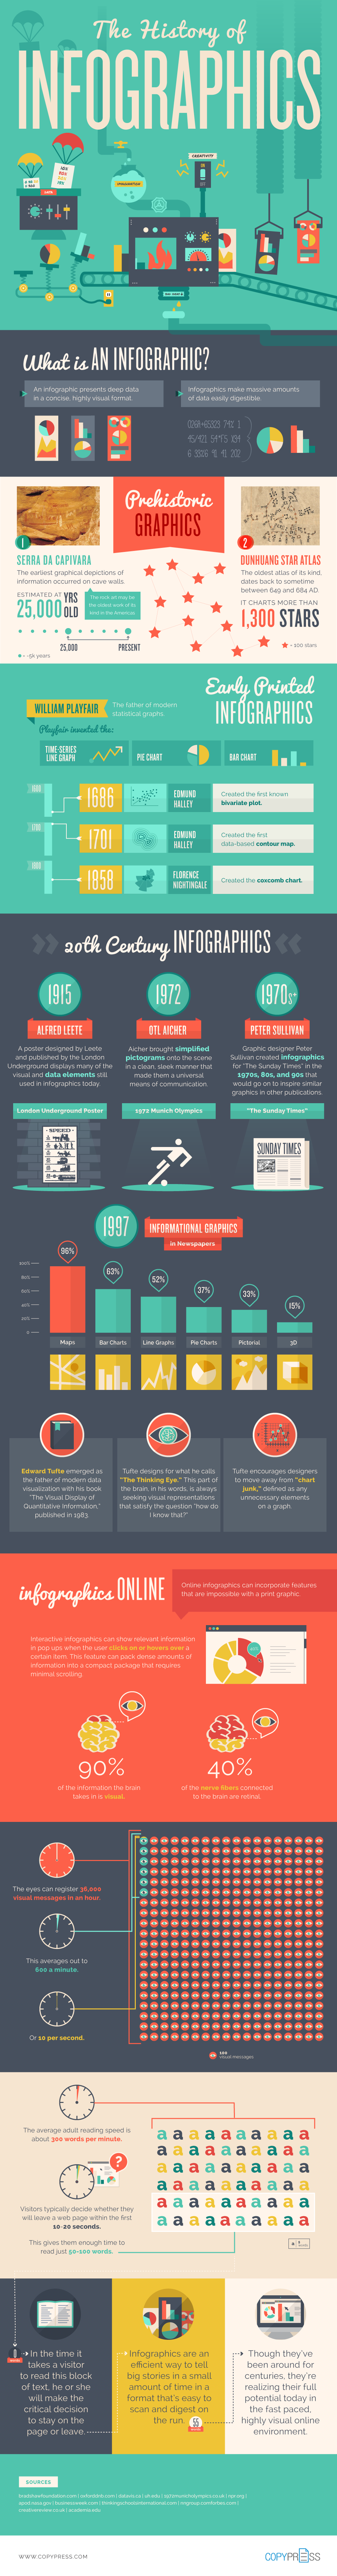 The History of Infographics on